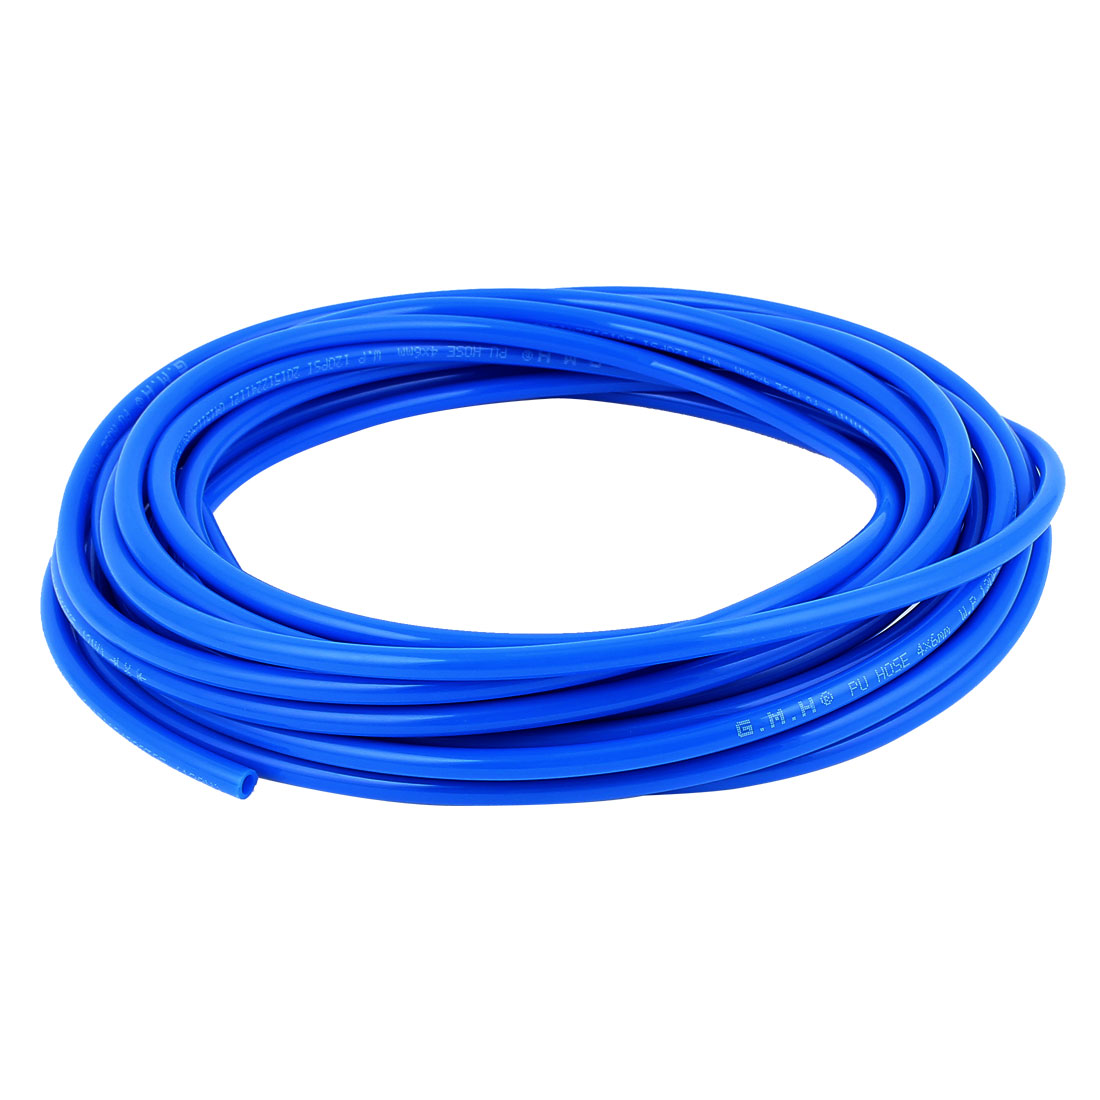 6mm x 4mm Fleaxible PU Tube Pneumatic Hose Blue 8.5M Length